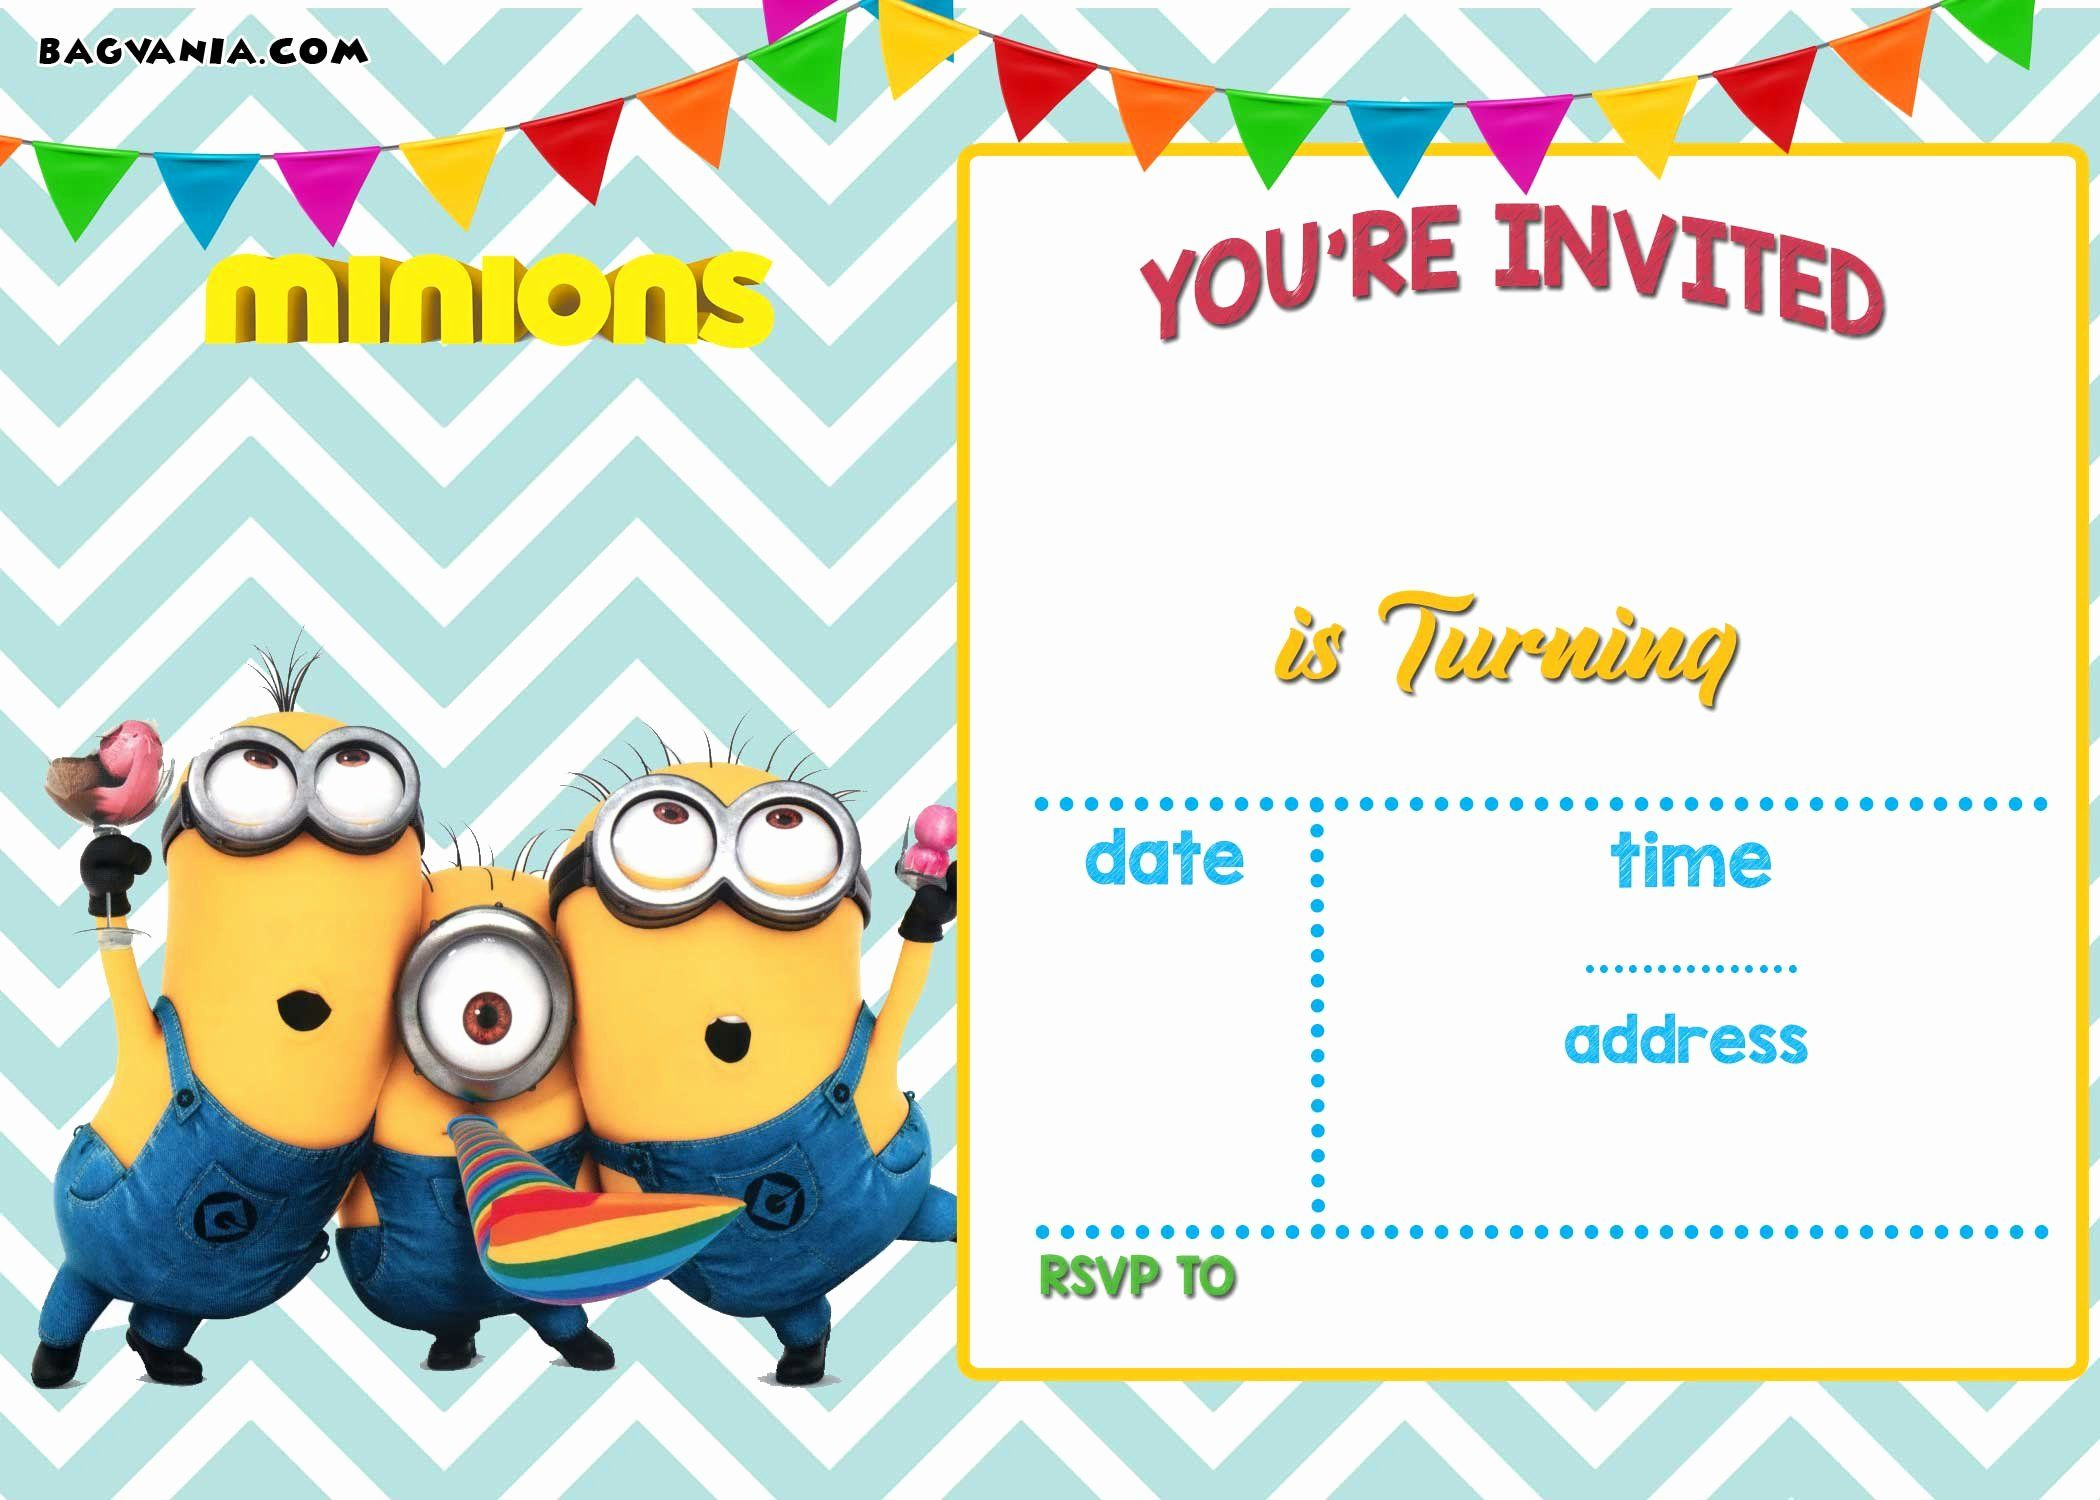 Birthday Invitation Template Printable New Free Printable Minion Minion Birthday Invitations Boy Birthday Party Invitations Birthday Party Invitation Templates